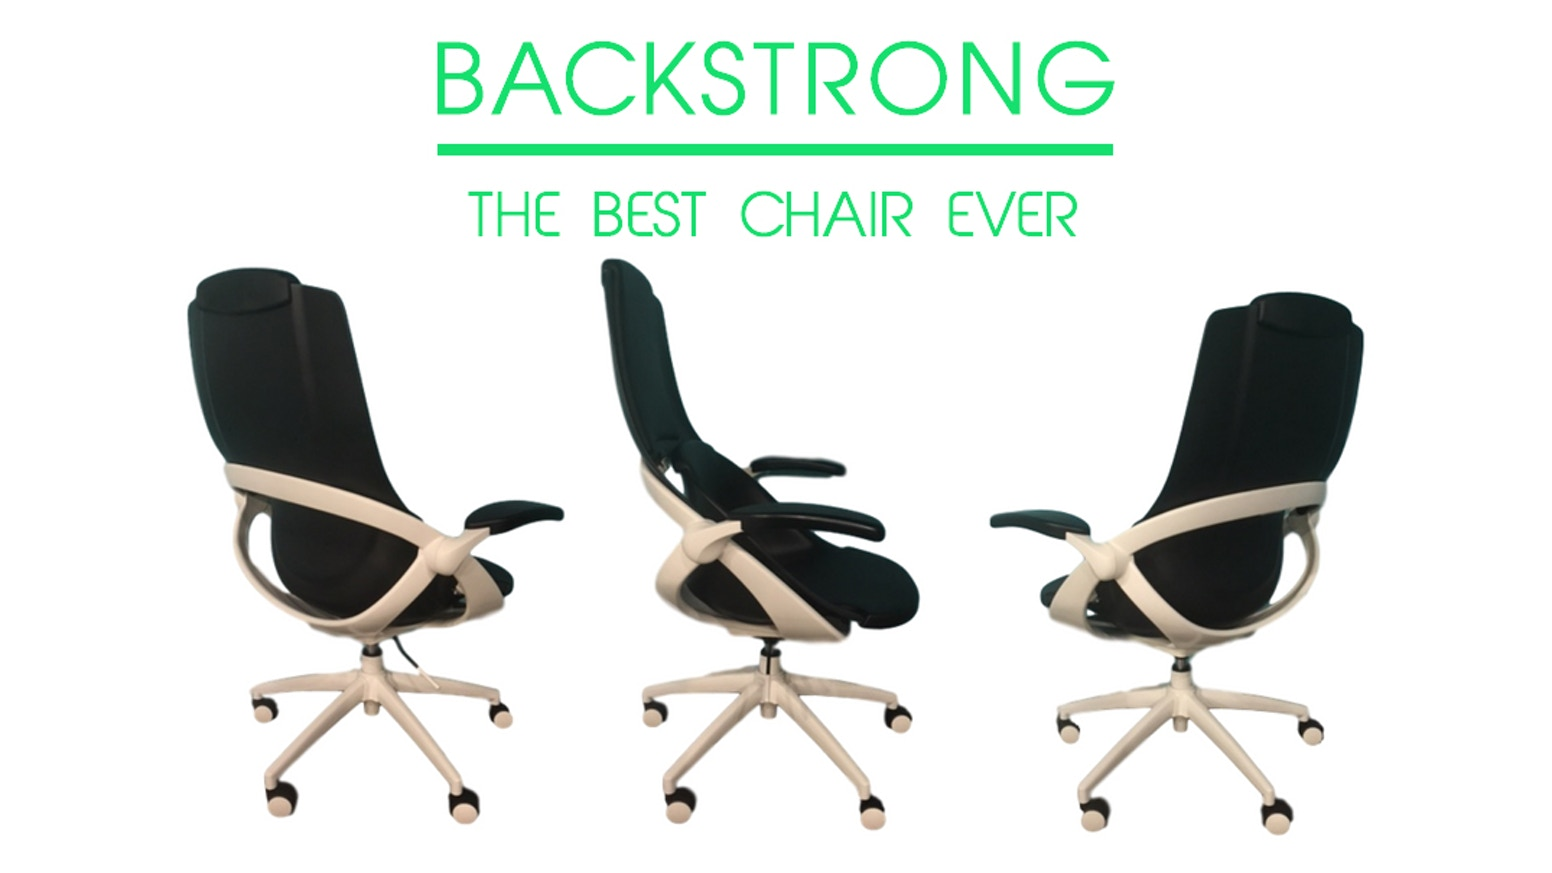 Finally a chair that saves your back! Ergonomic design engages your core. Sit-In-Motion all day for health, comfort & avoiding pain.